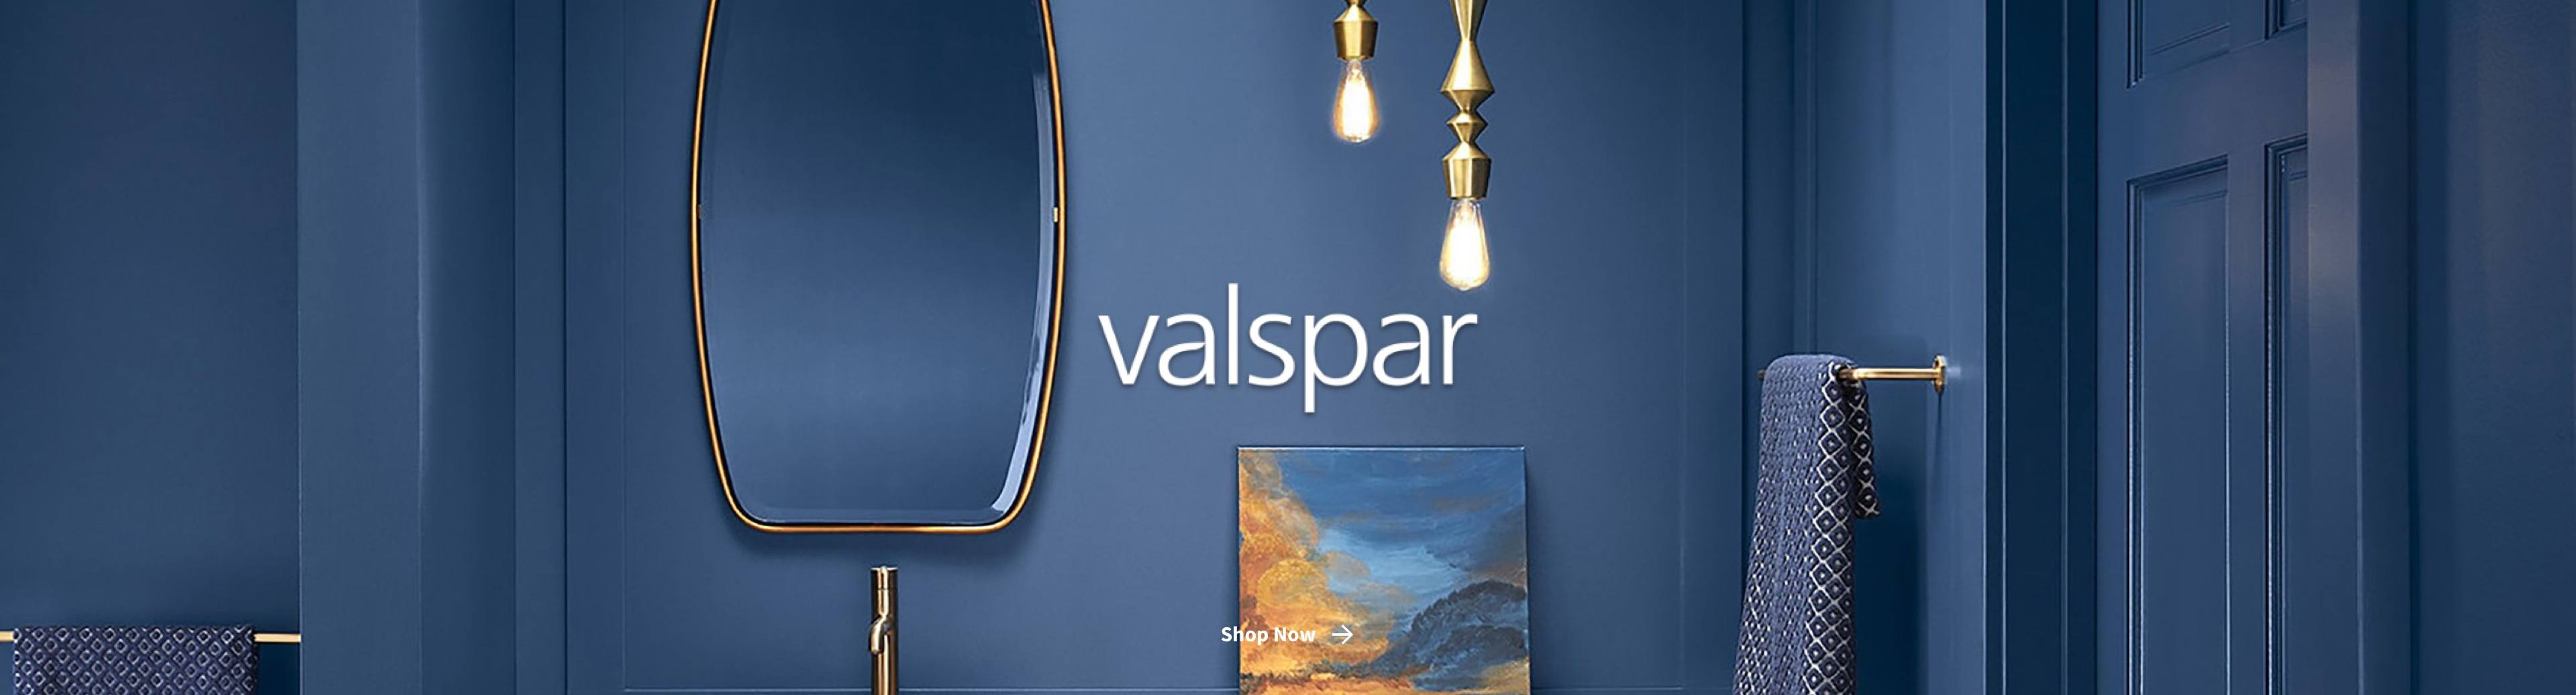 Blue Valspar paint on wall with logo